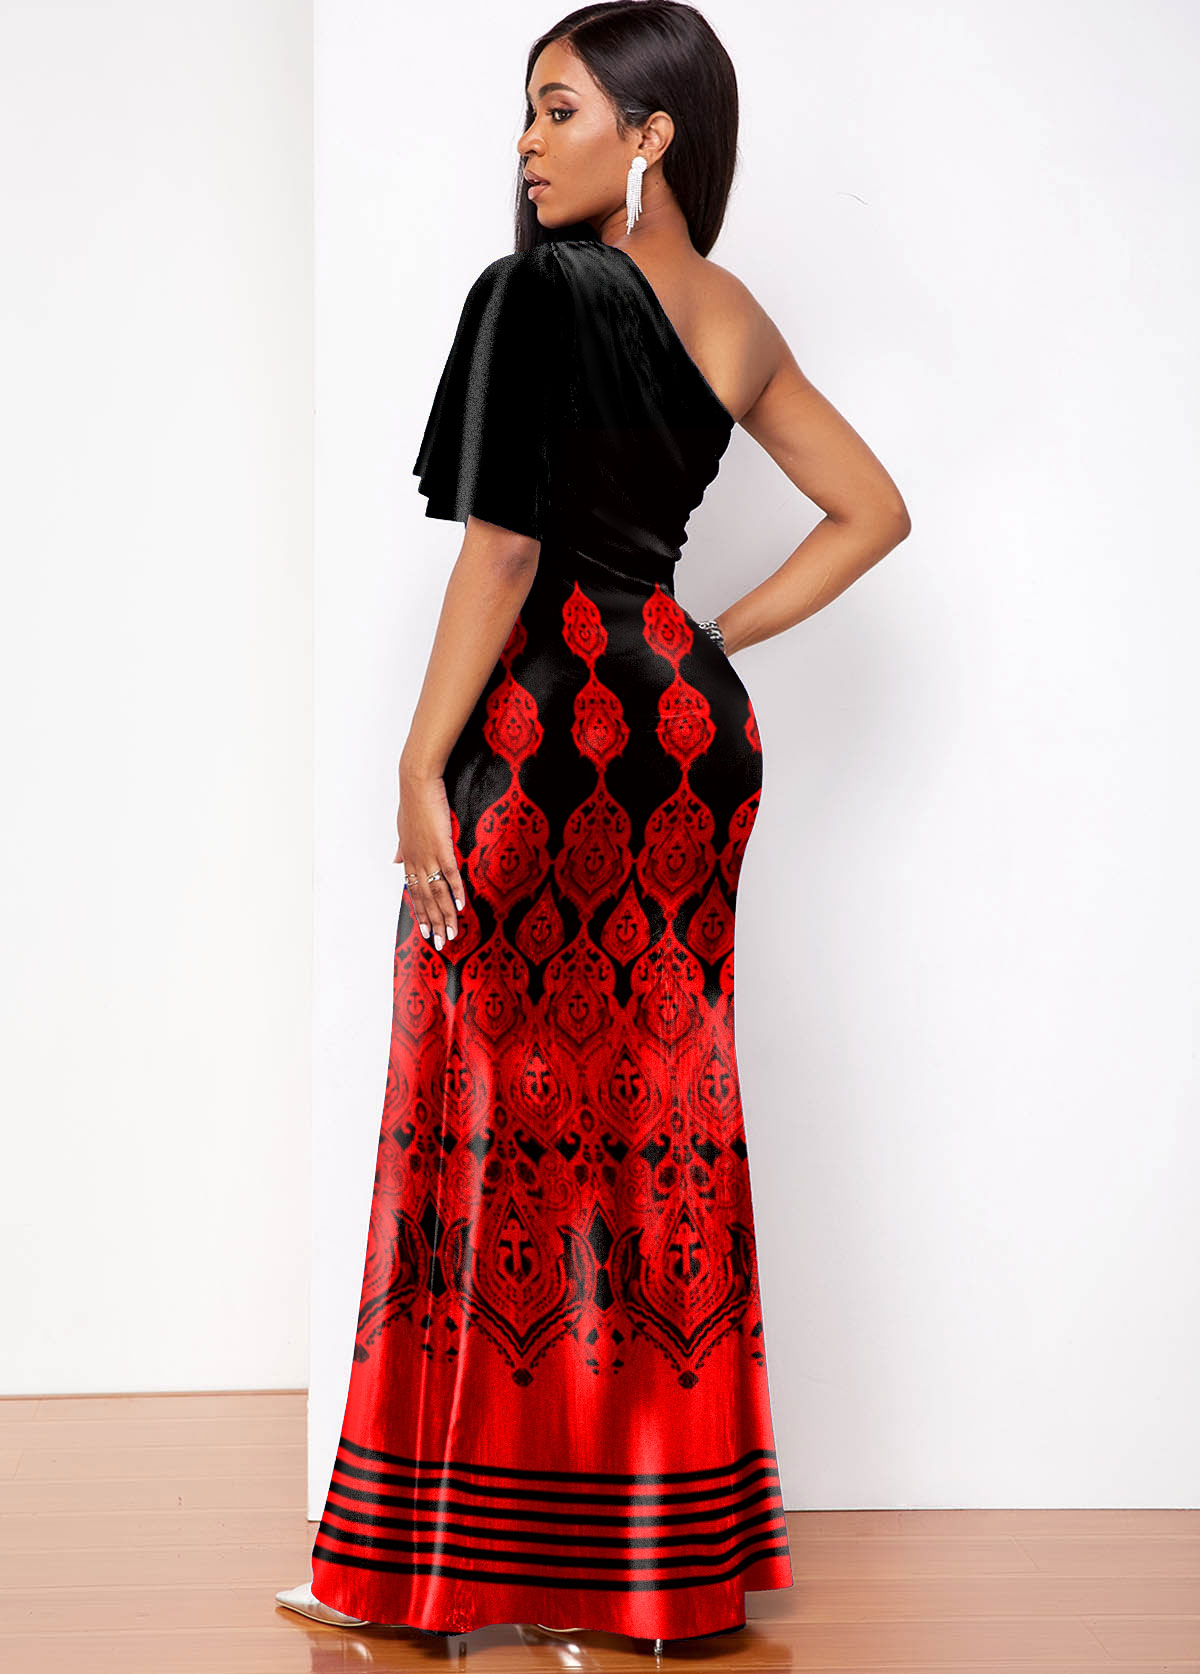 Butterfly Sleeve Tribal Print One Shoulder Maxi Dress